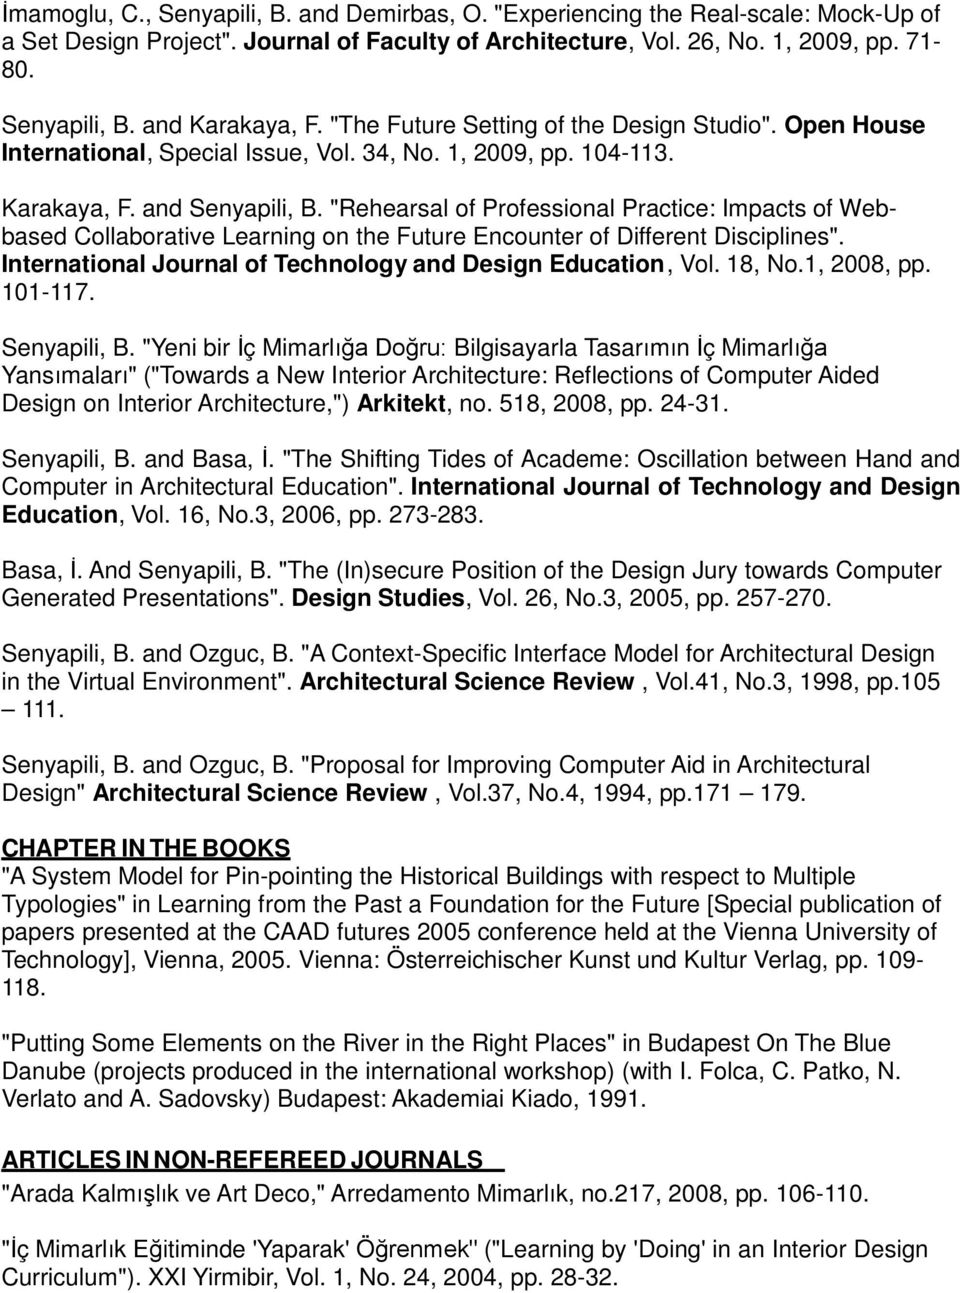 """Rehearsal of Professional Practice: Impacts of Webbased Collaborative Learning on the Future Encounter of Different Disciplines"". International Journal of Technology and Design Education, Vol."